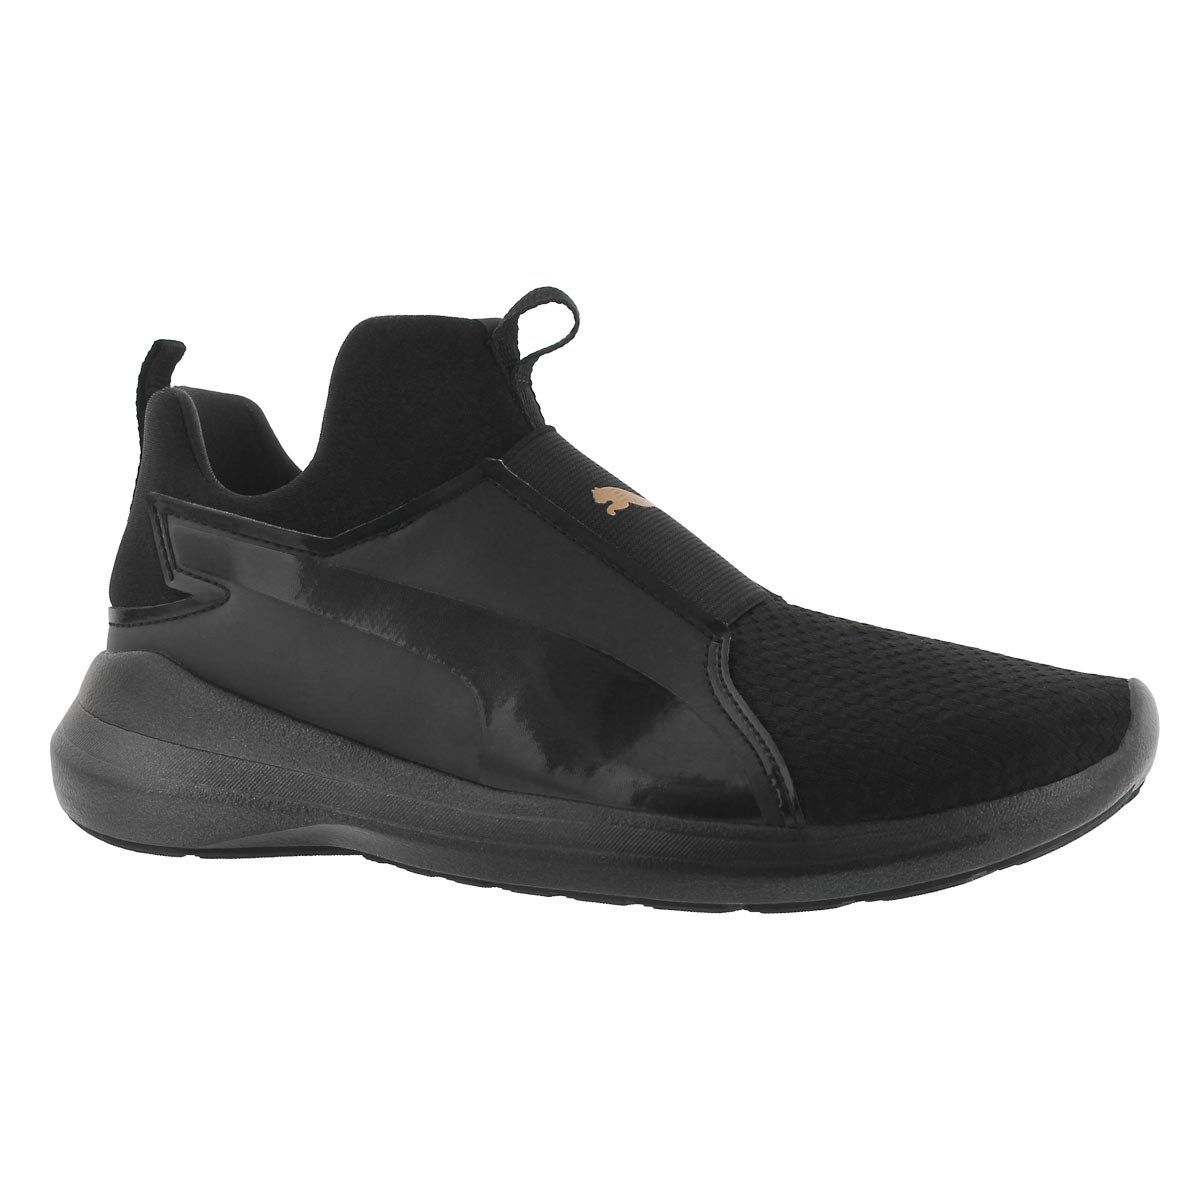 Women's PUMA REBEL MID black sneakers